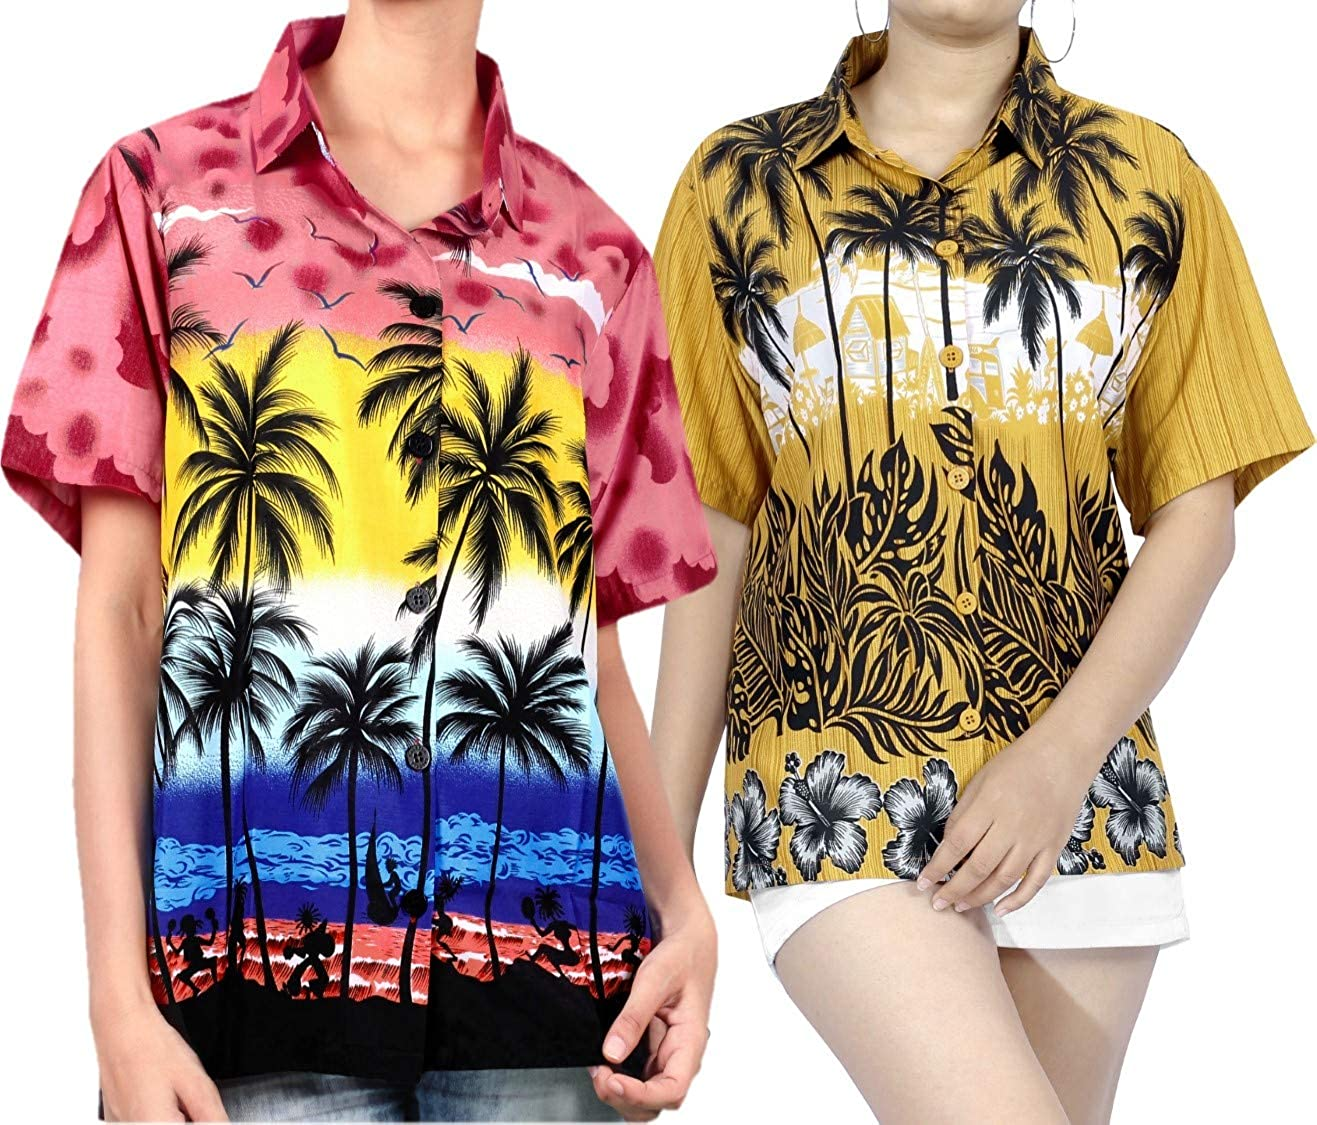 LA LEELA Women's Tropical Hawaiian Shirt Button Down Shirt Dress Work from Home Clothes Women Beach Shirt Blouse Shirt Combo Pack of 2 Size XXL